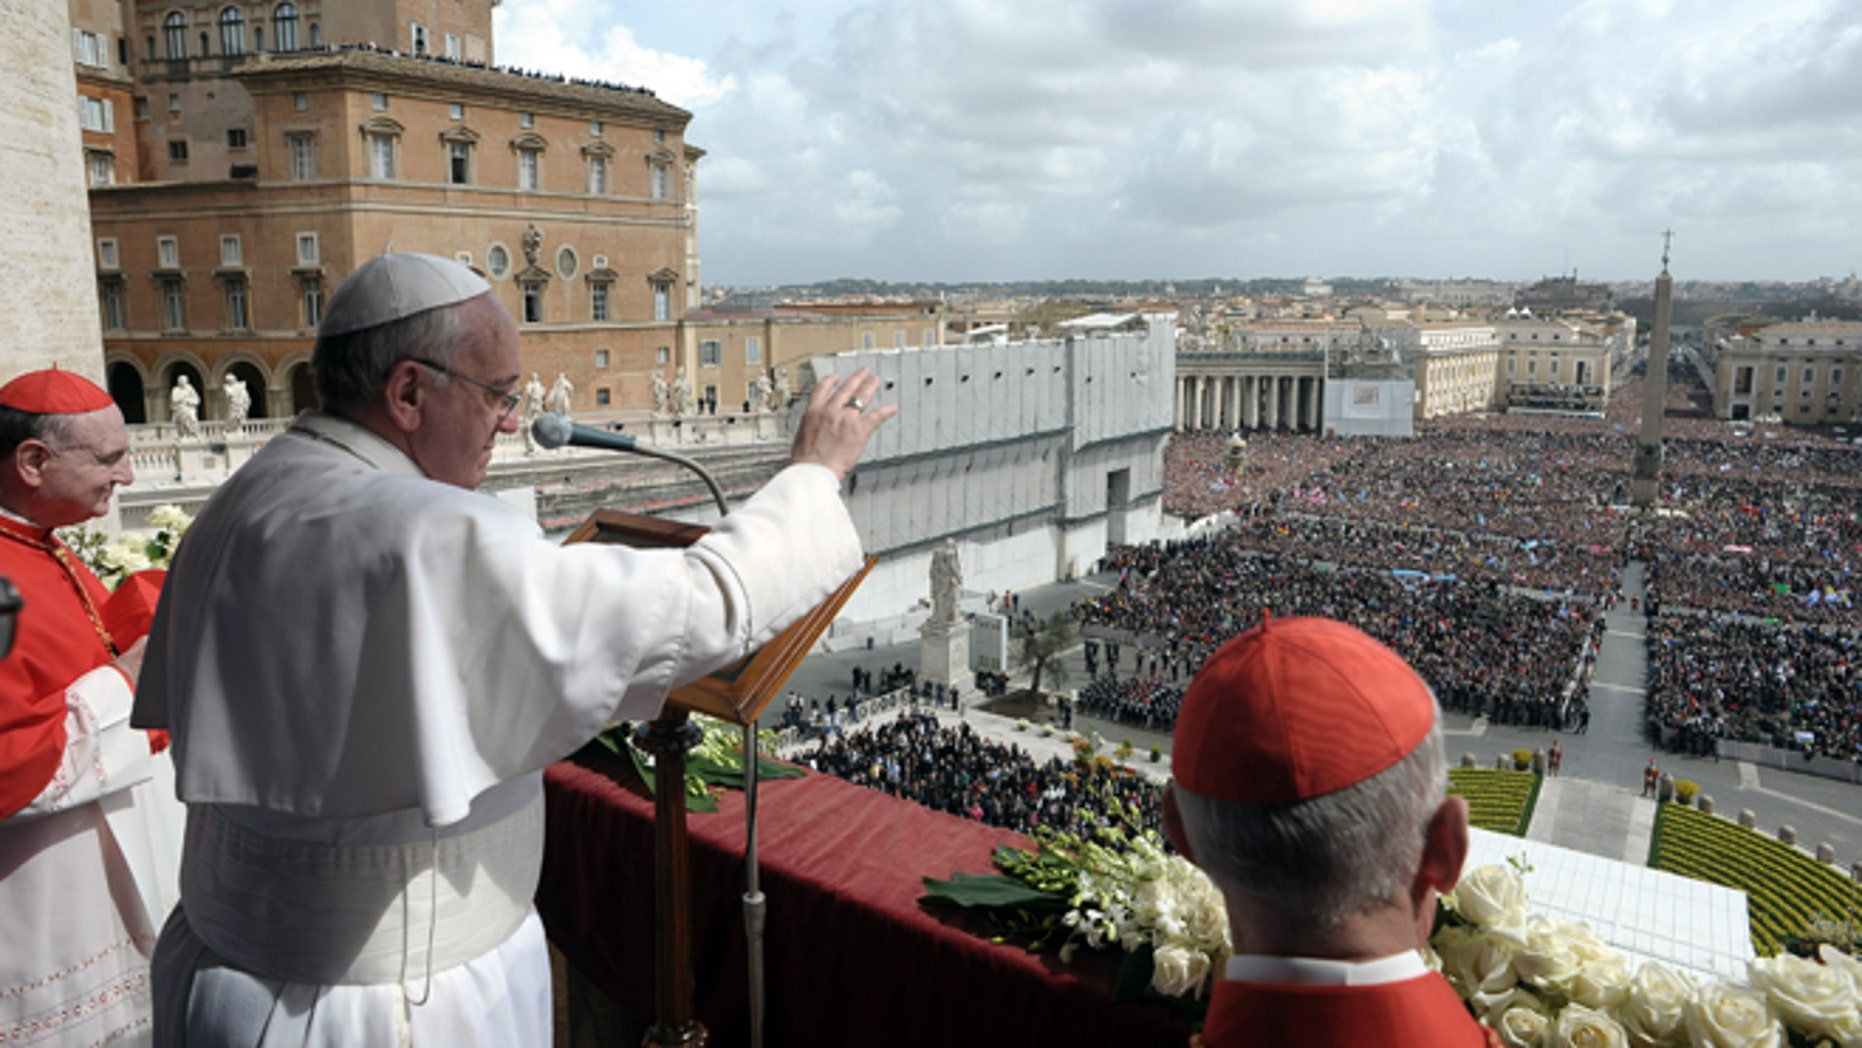 In this photo provided by the Vatican newspaper L'Osservatore Romano, Pope Francis delivers the Urbi et Orbi (to the city and to the world) blessing, in St. Peter's Square at the Vatican, Sunday, March 31, 2013. Pope Francis celebrated his first Easter Sunday Mass as pontiff in St. Peter's Square, packed by joyous pilgrims, tourists and Romans and bedecked by spring flowers.Wearing cream-colored vestments, Francis strode onto the esplanade in front of St. Peter's Basilica and took his place at an altar set up under a white canopy. (AP Photo/L'Osservatore Romano)